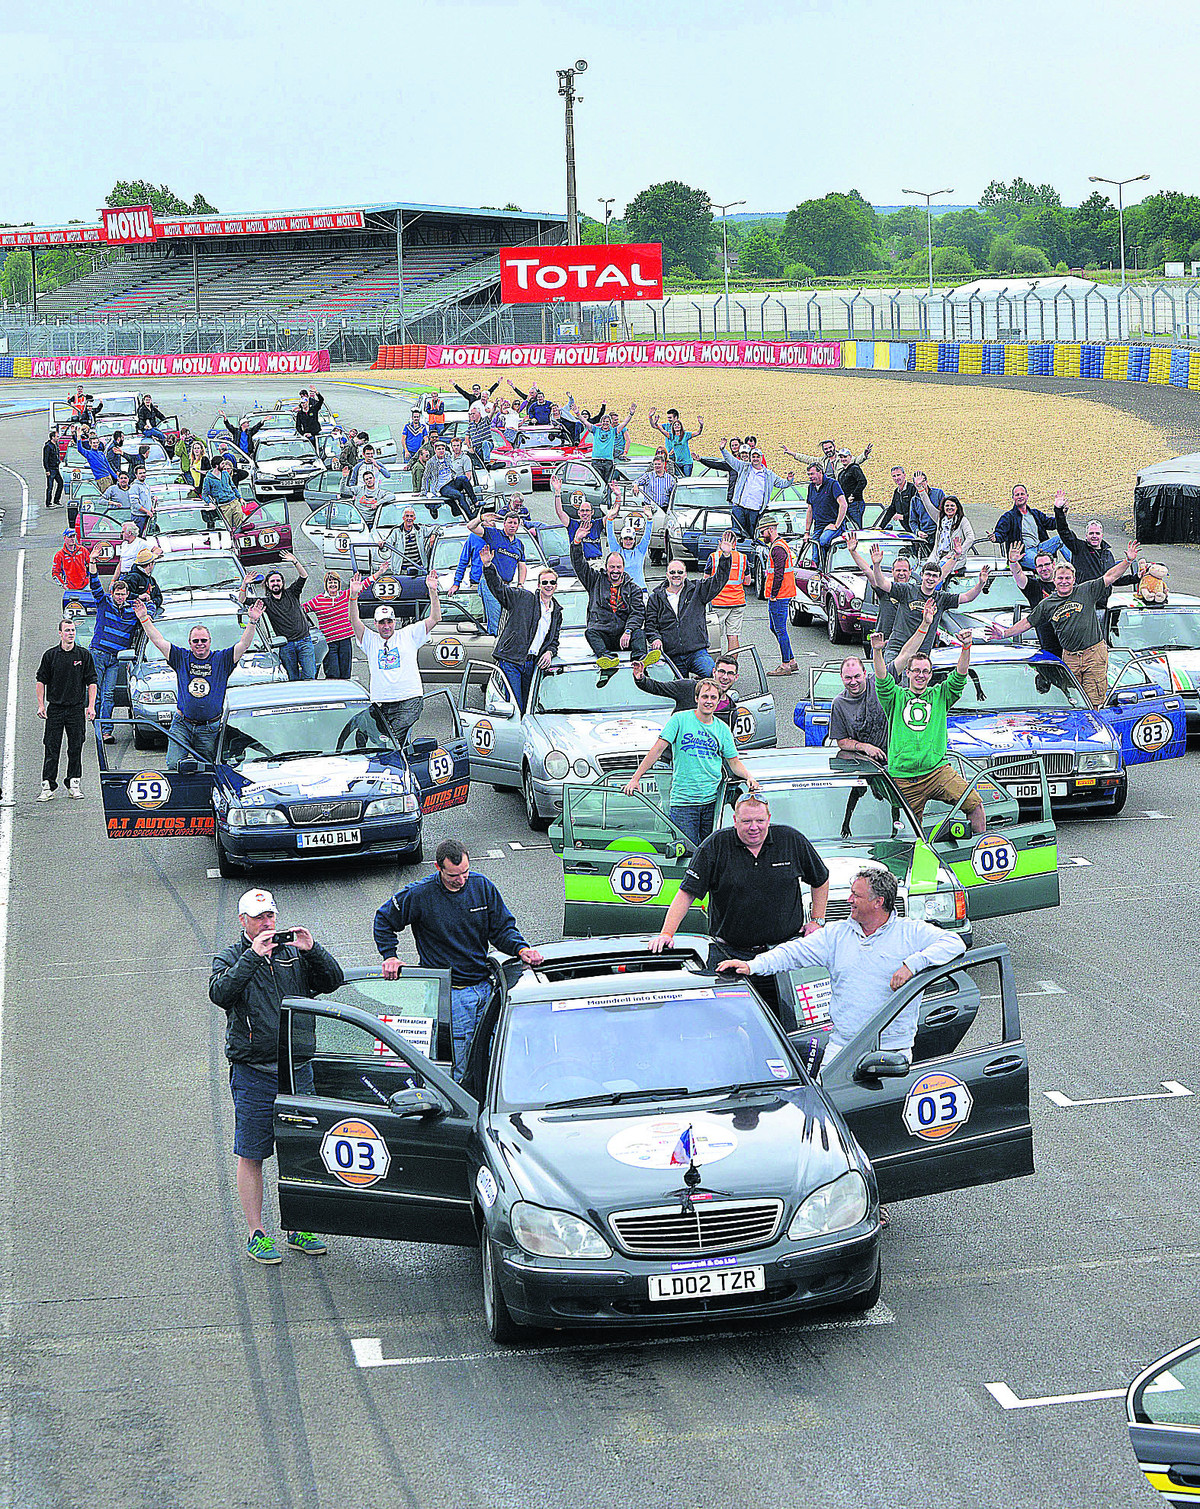 Drivers in pole position for twin town fundraising trek